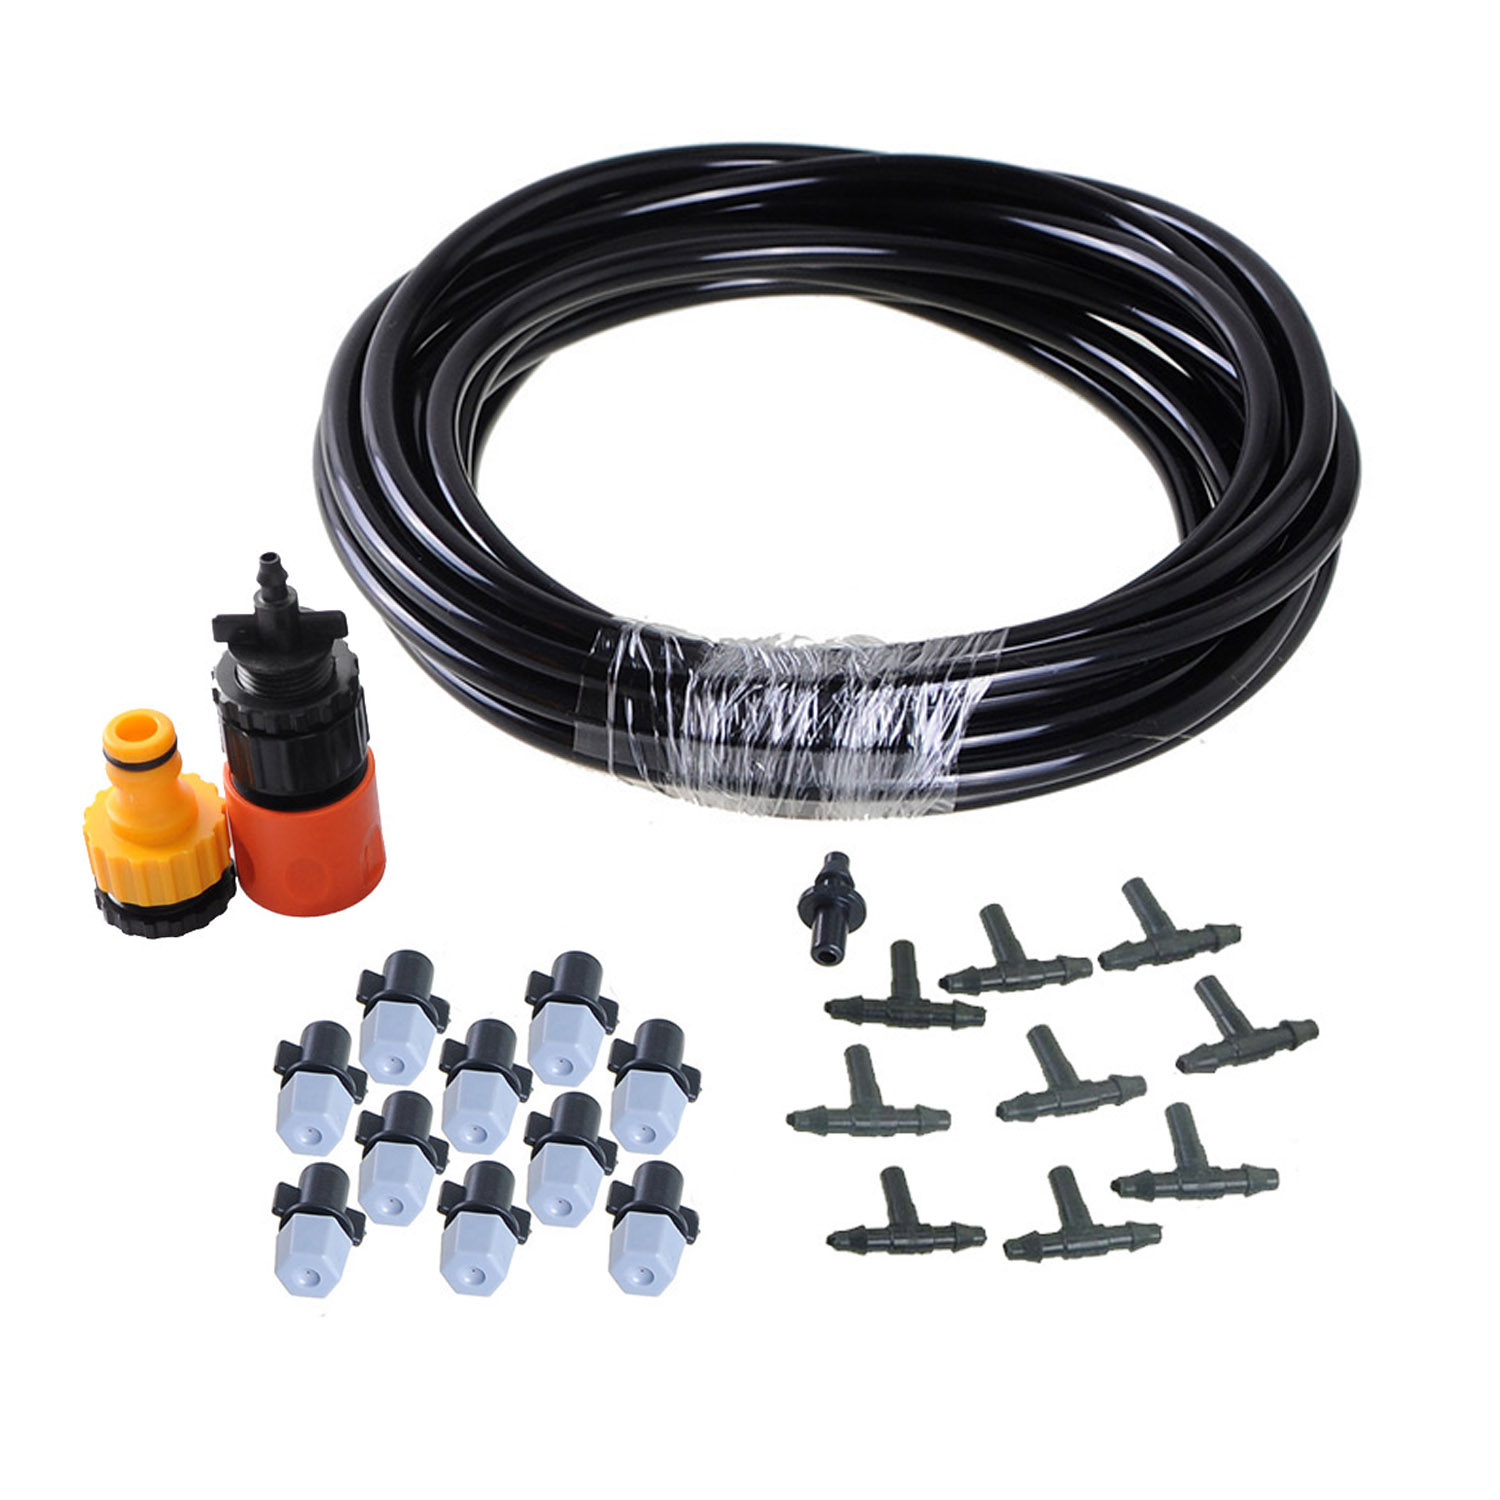 Best selling DIY 15FT 10 Nozzles Misting System Kit For Outdoor Garden Greenhouse Irrigation Reptile Mosquito Prevent